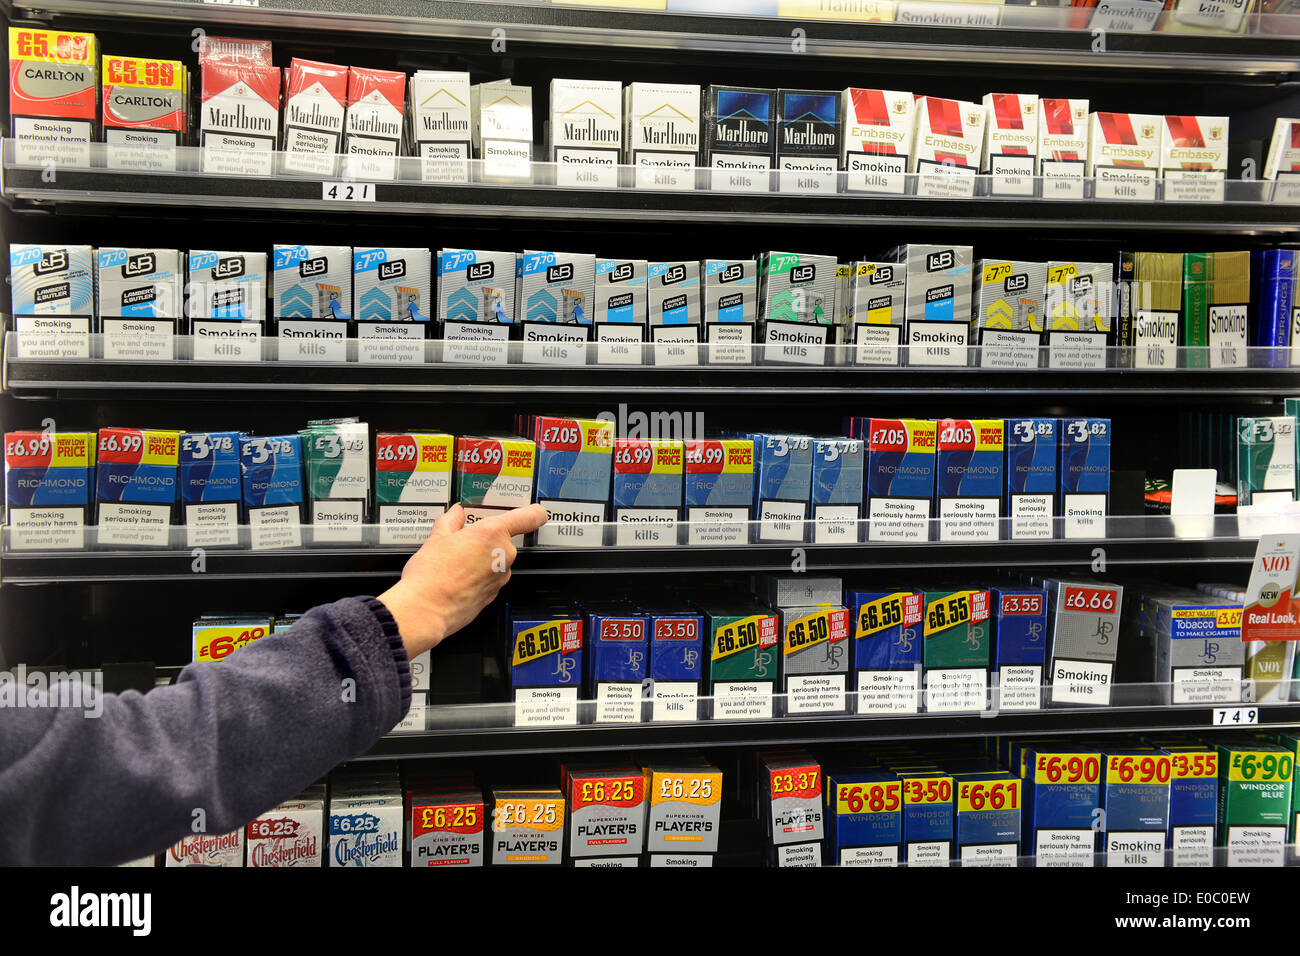 Cigarette tobacco branding brands brand display shop Uk - Stock Image